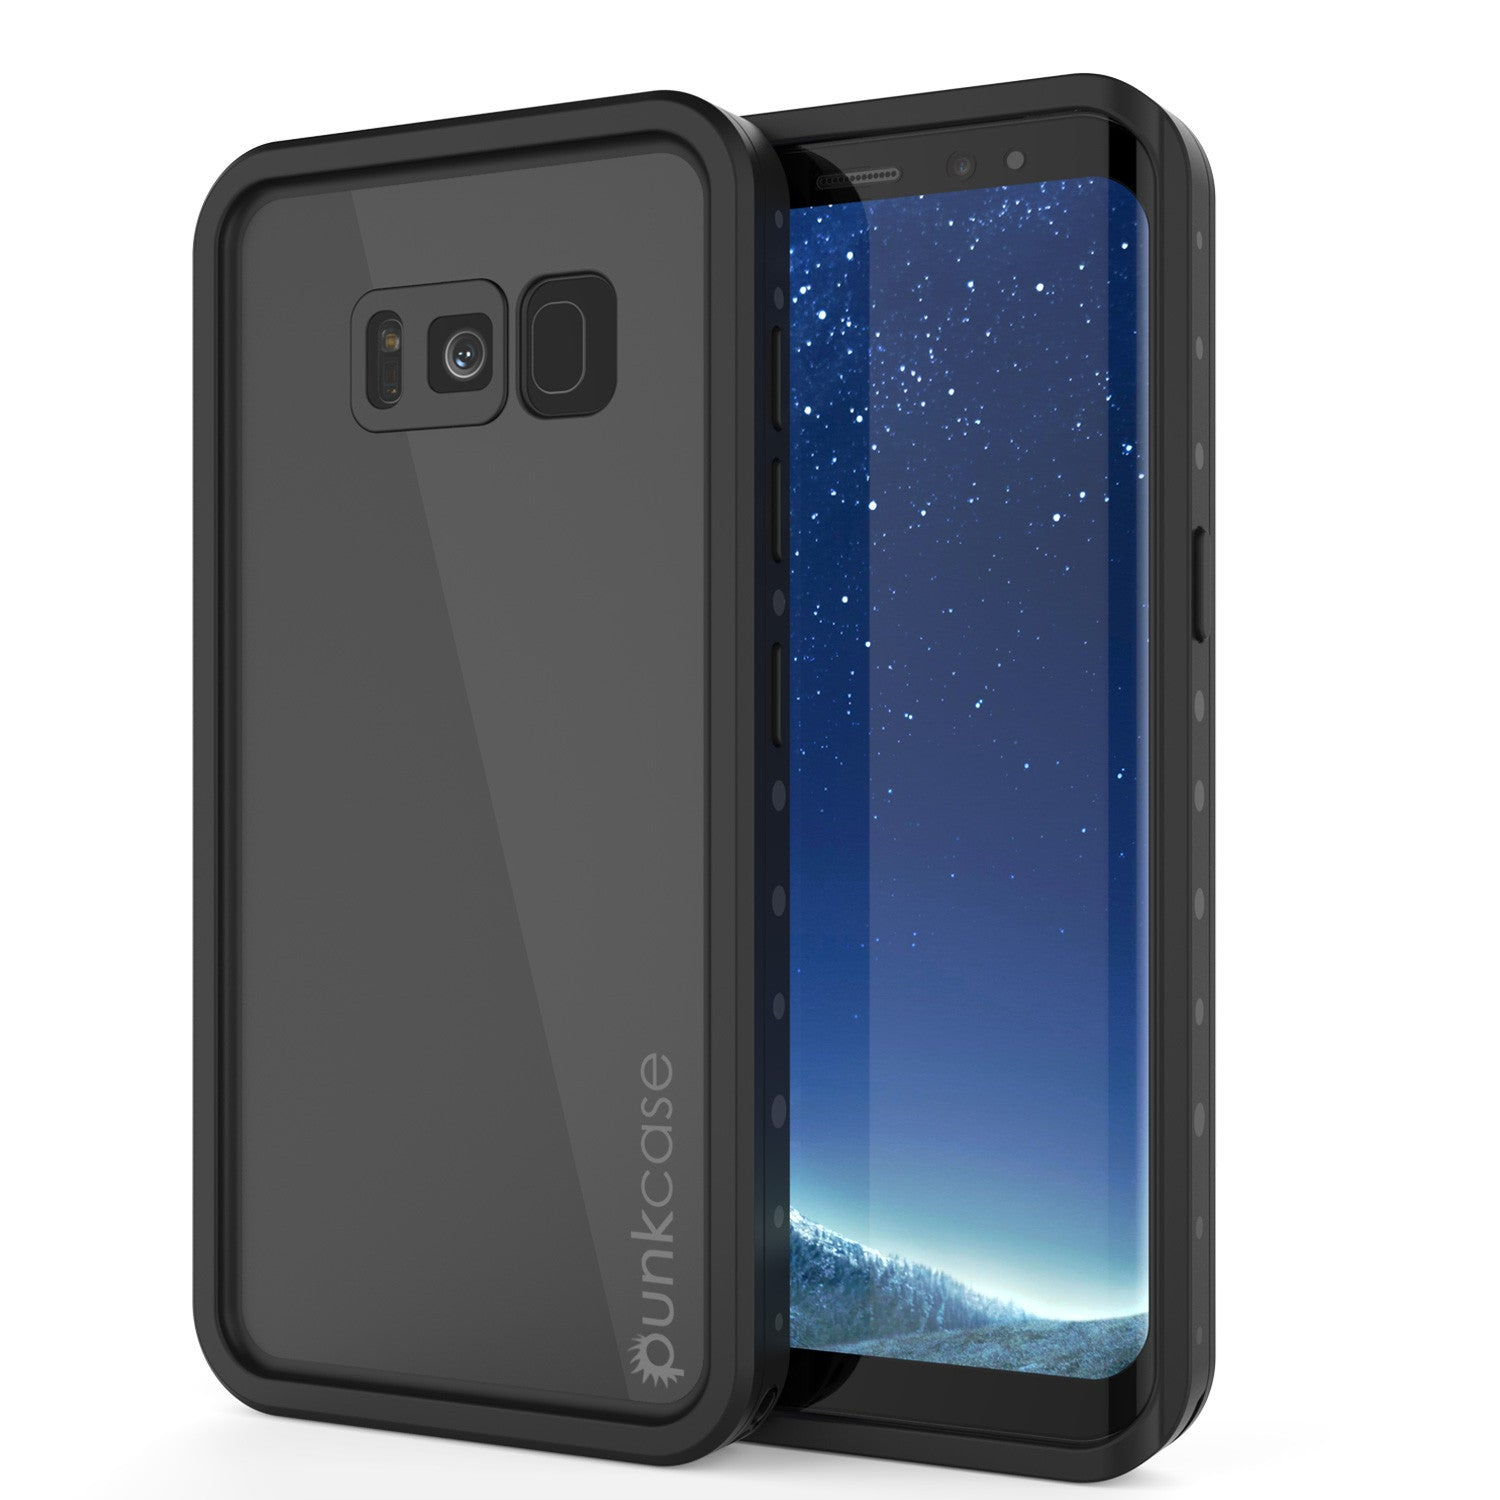 competitive price 17229 194b7 Galaxy S8 Plus Waterproof Case PunkCase StudStar Black Thin 6.6ft  Underwater IP68 Shock/Snow Proof